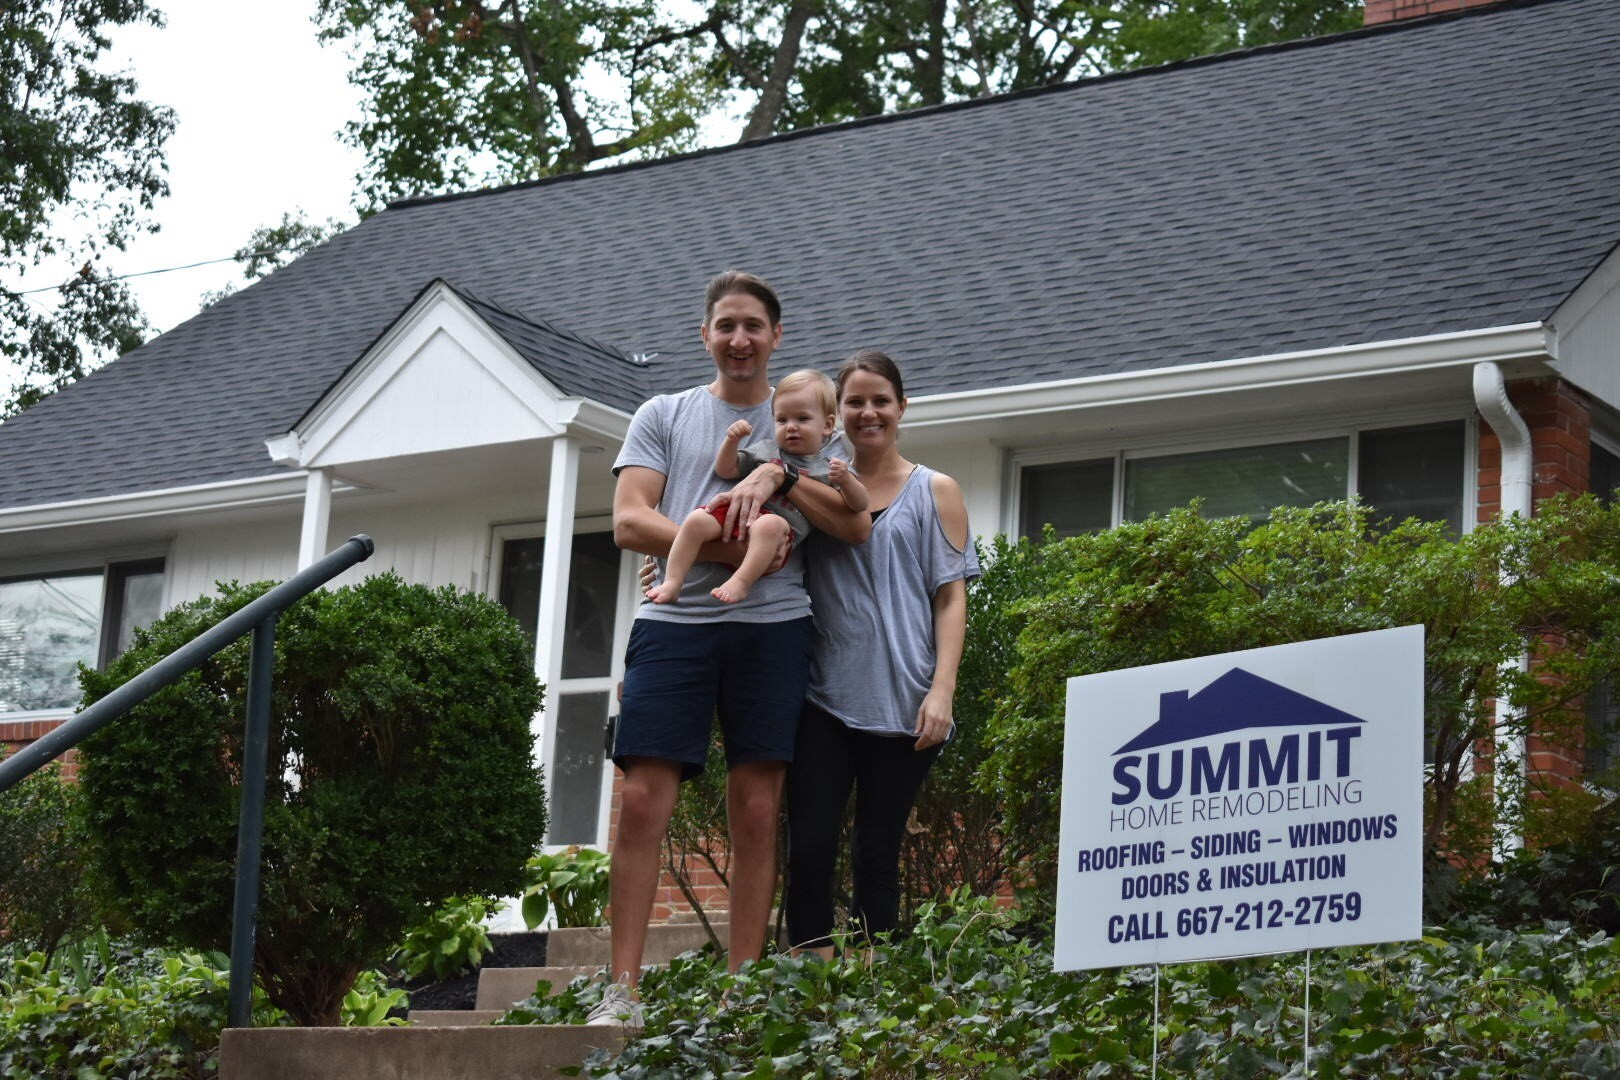 We wish the Engorn family nothing but the best and hope to be there for any future home remodeling needs!